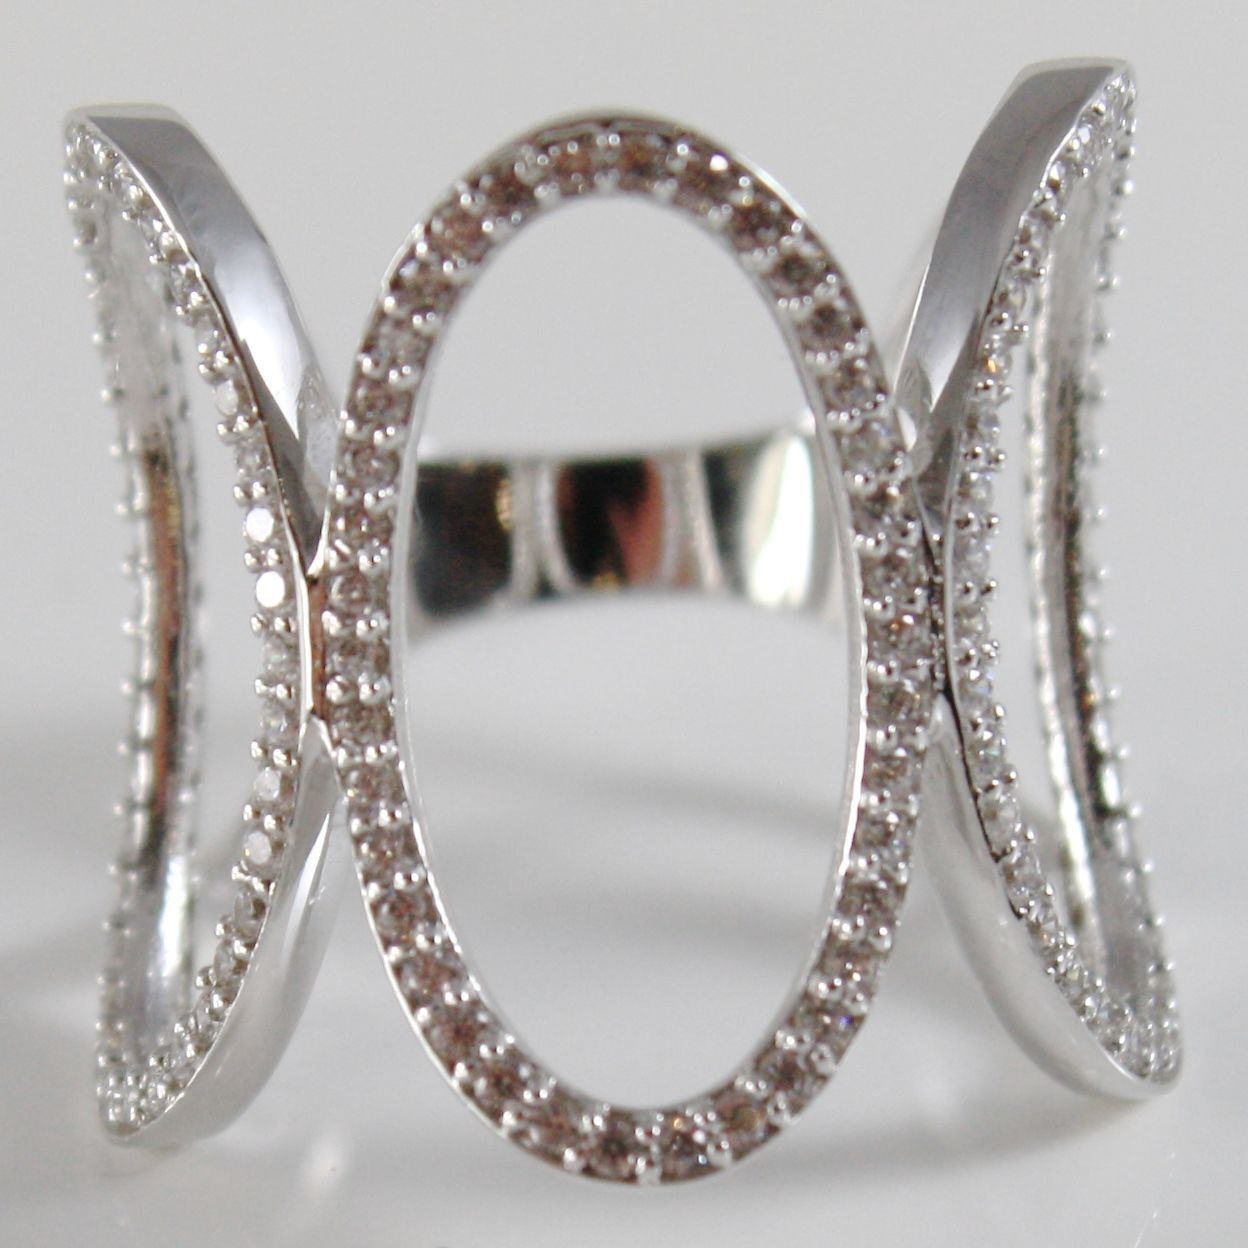 WHITE GOLD RING 750 18K, BAND WITH OVALS, cobblestone ZIRCON, MADE IN ITALY